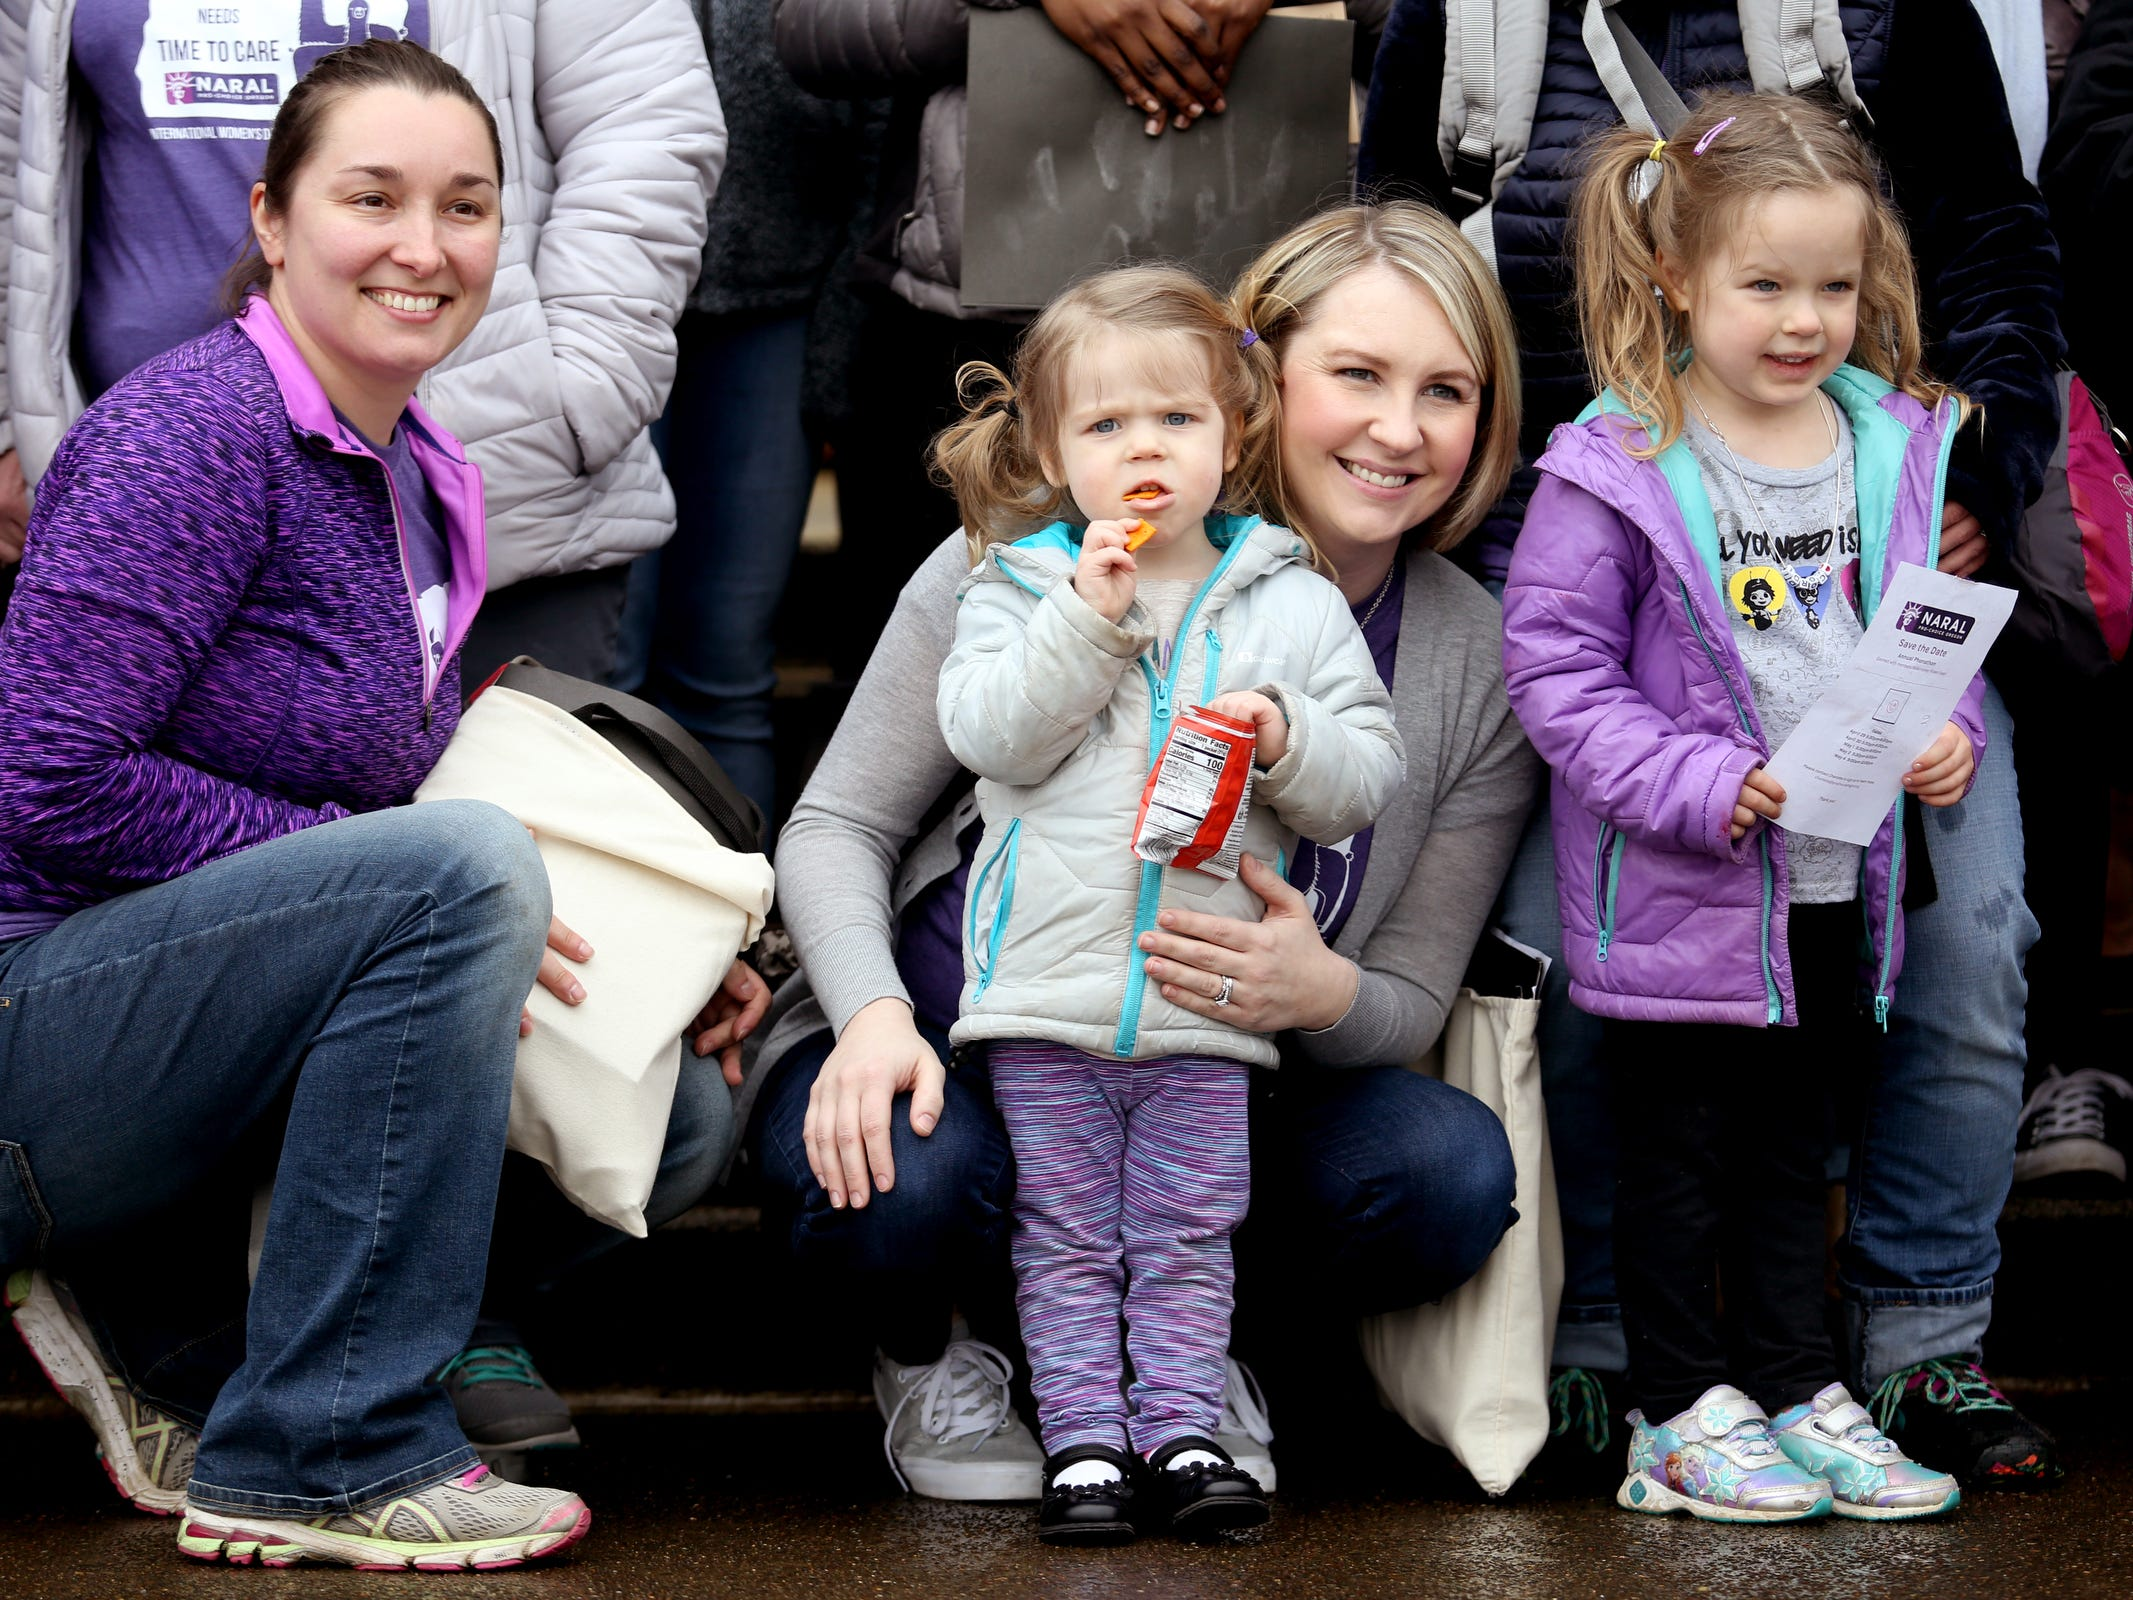 Ginni Garnes, 2, of Portland, snacks while having her photo taken with her mom, Marci Garnes, from left, family friend Joan Morgan, of Happy Valley, and sister Cordi Garnes, 4, during a demonstration for International Women's Day at the Oregon State Capitol in Salem on Friday, March 8, 2019. Many during the rally voiced their support for a state-run family and medical leave insurance program in Oregon.